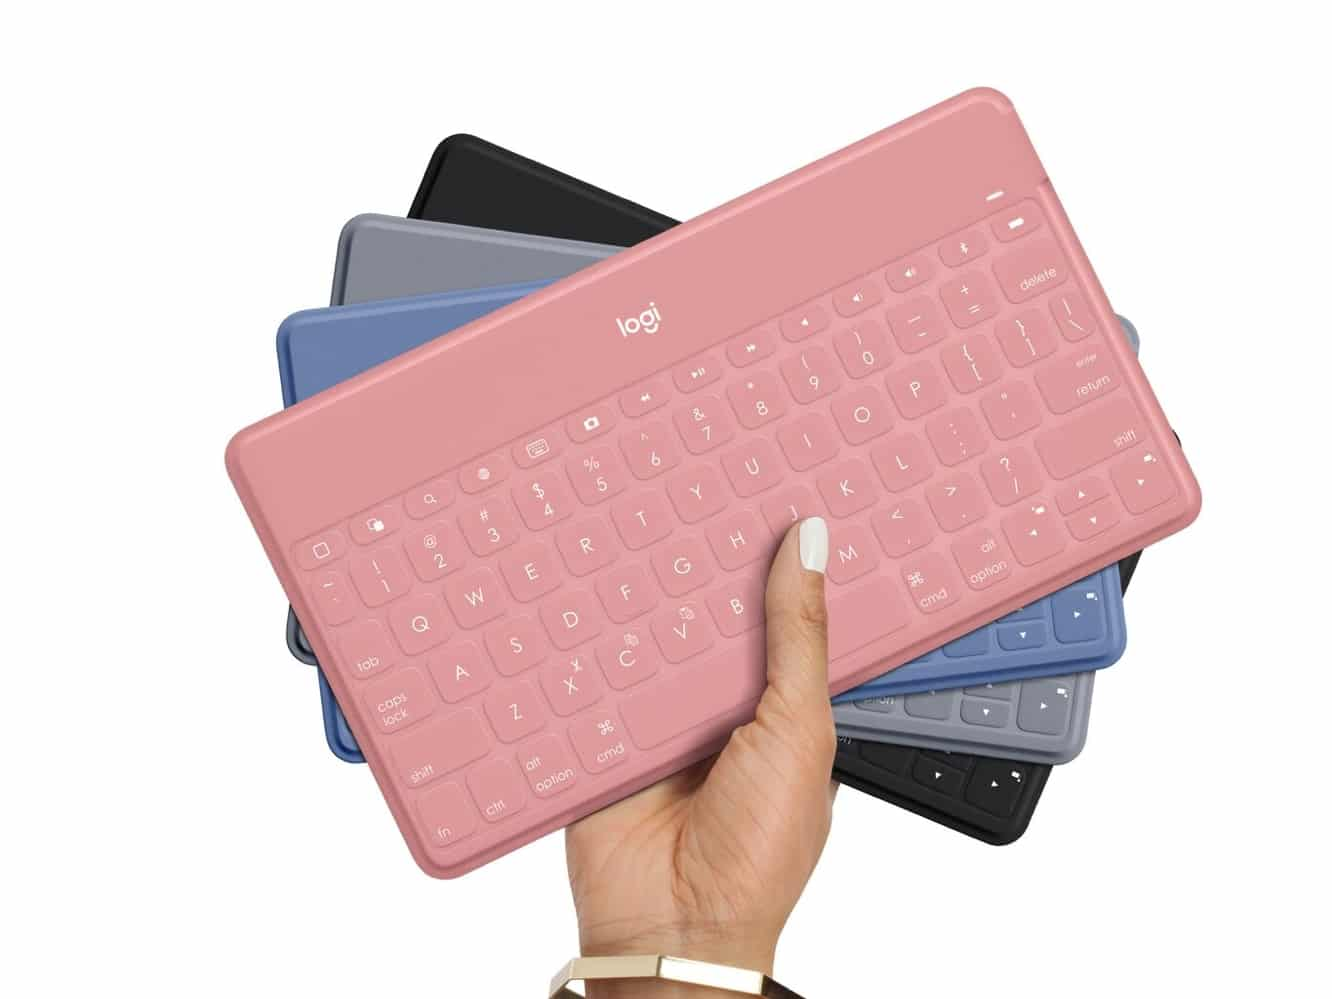 Logitech releases Keys-to-Go in three fun new colors